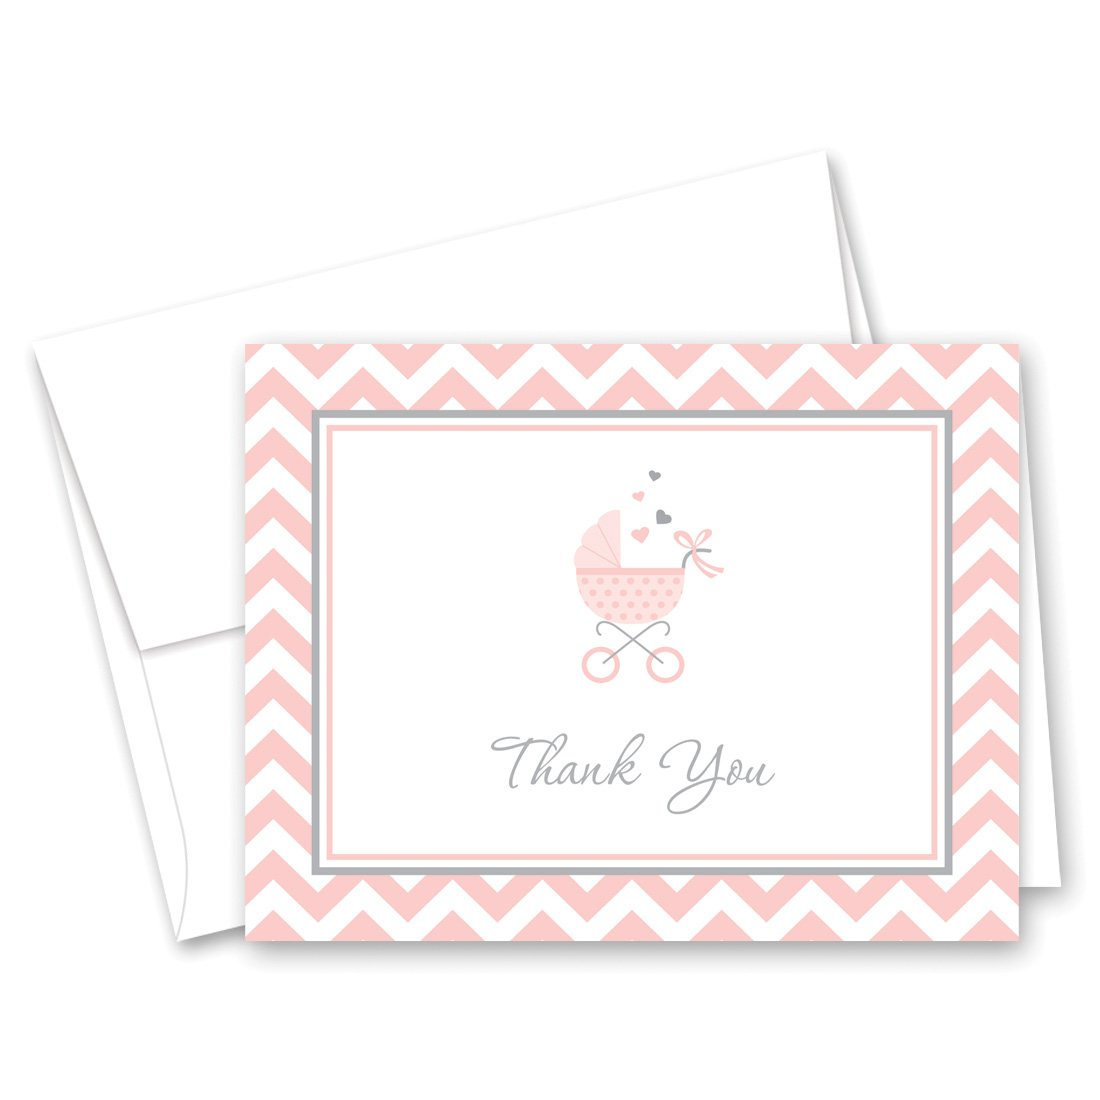 50 Cnt Pink Carriage Baby Shower Thank You Cards and Envelopes